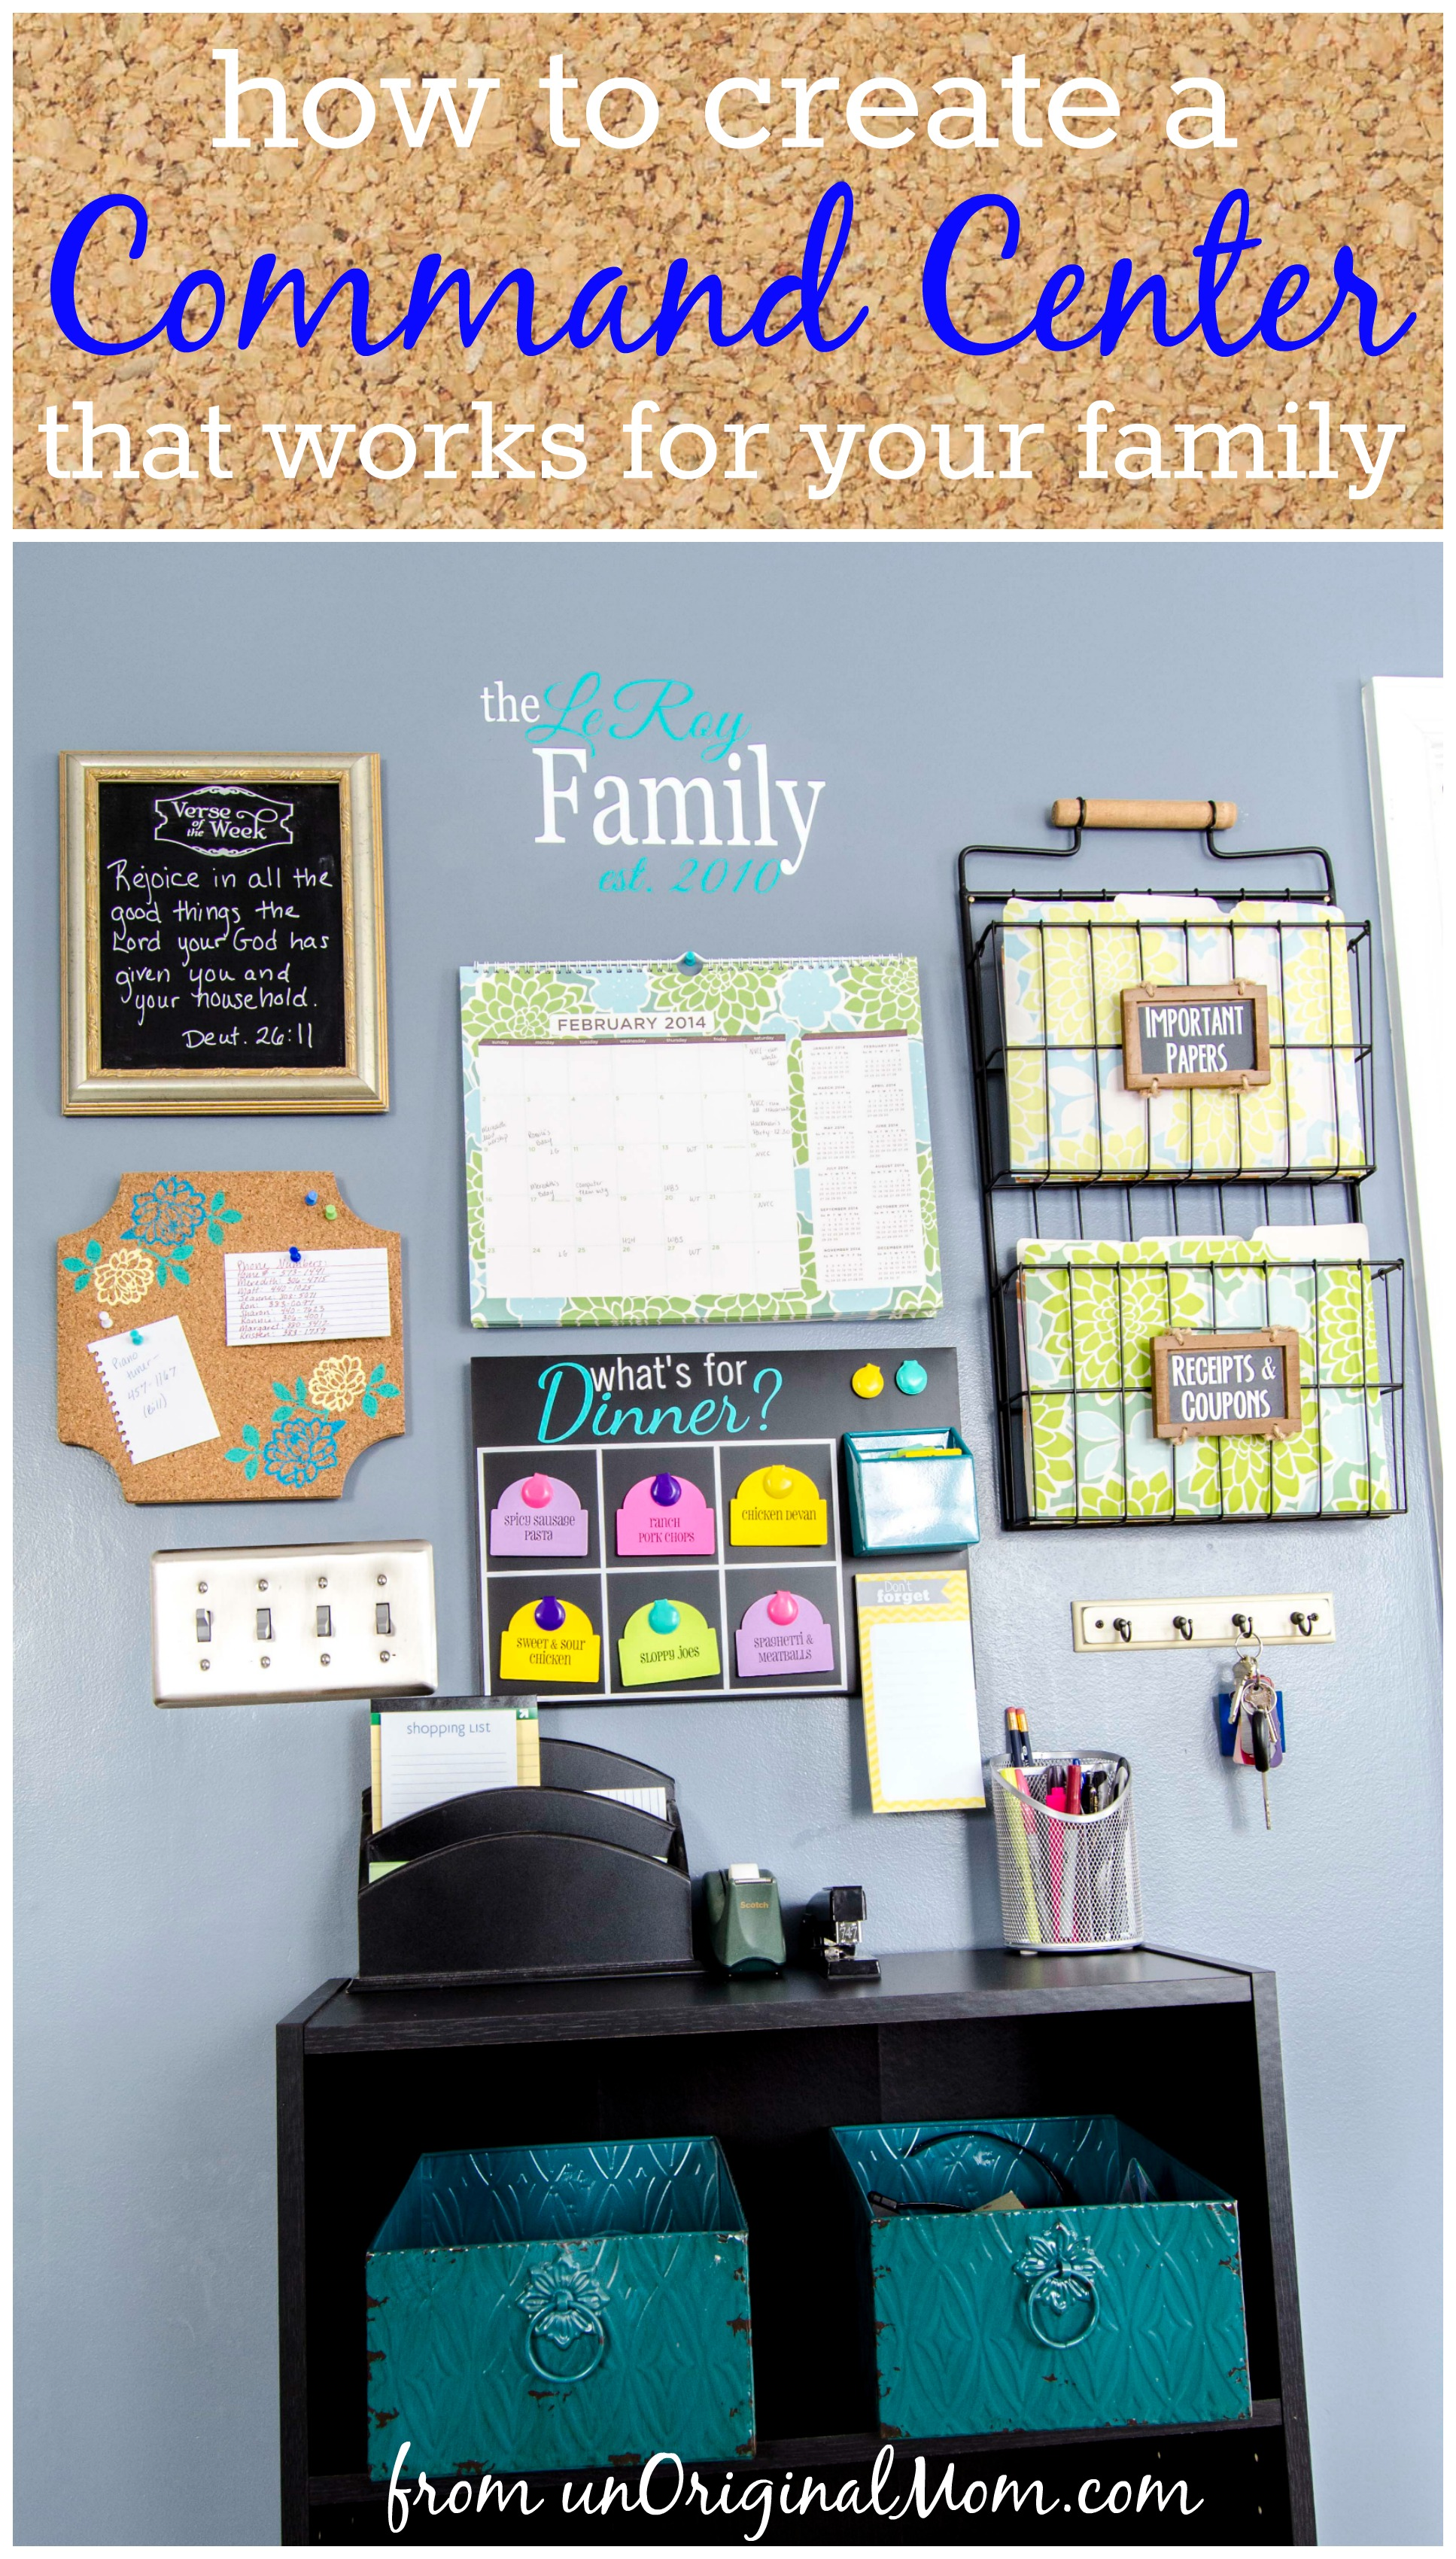 1000+ images about Home design & organization on Pinterest ...